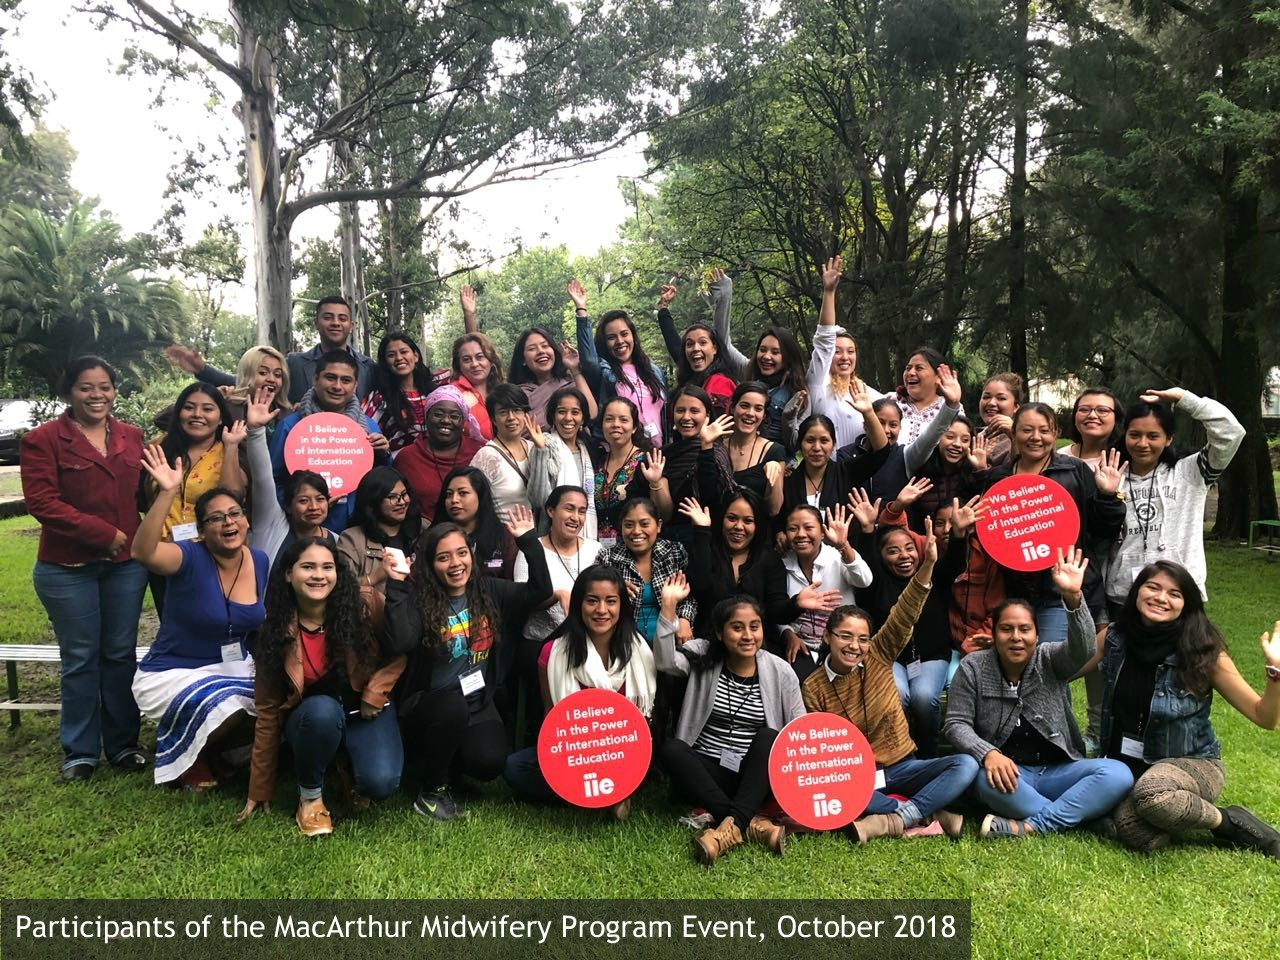 Participants of the MacArthur Midwifery Program Leadership Event, October 2018